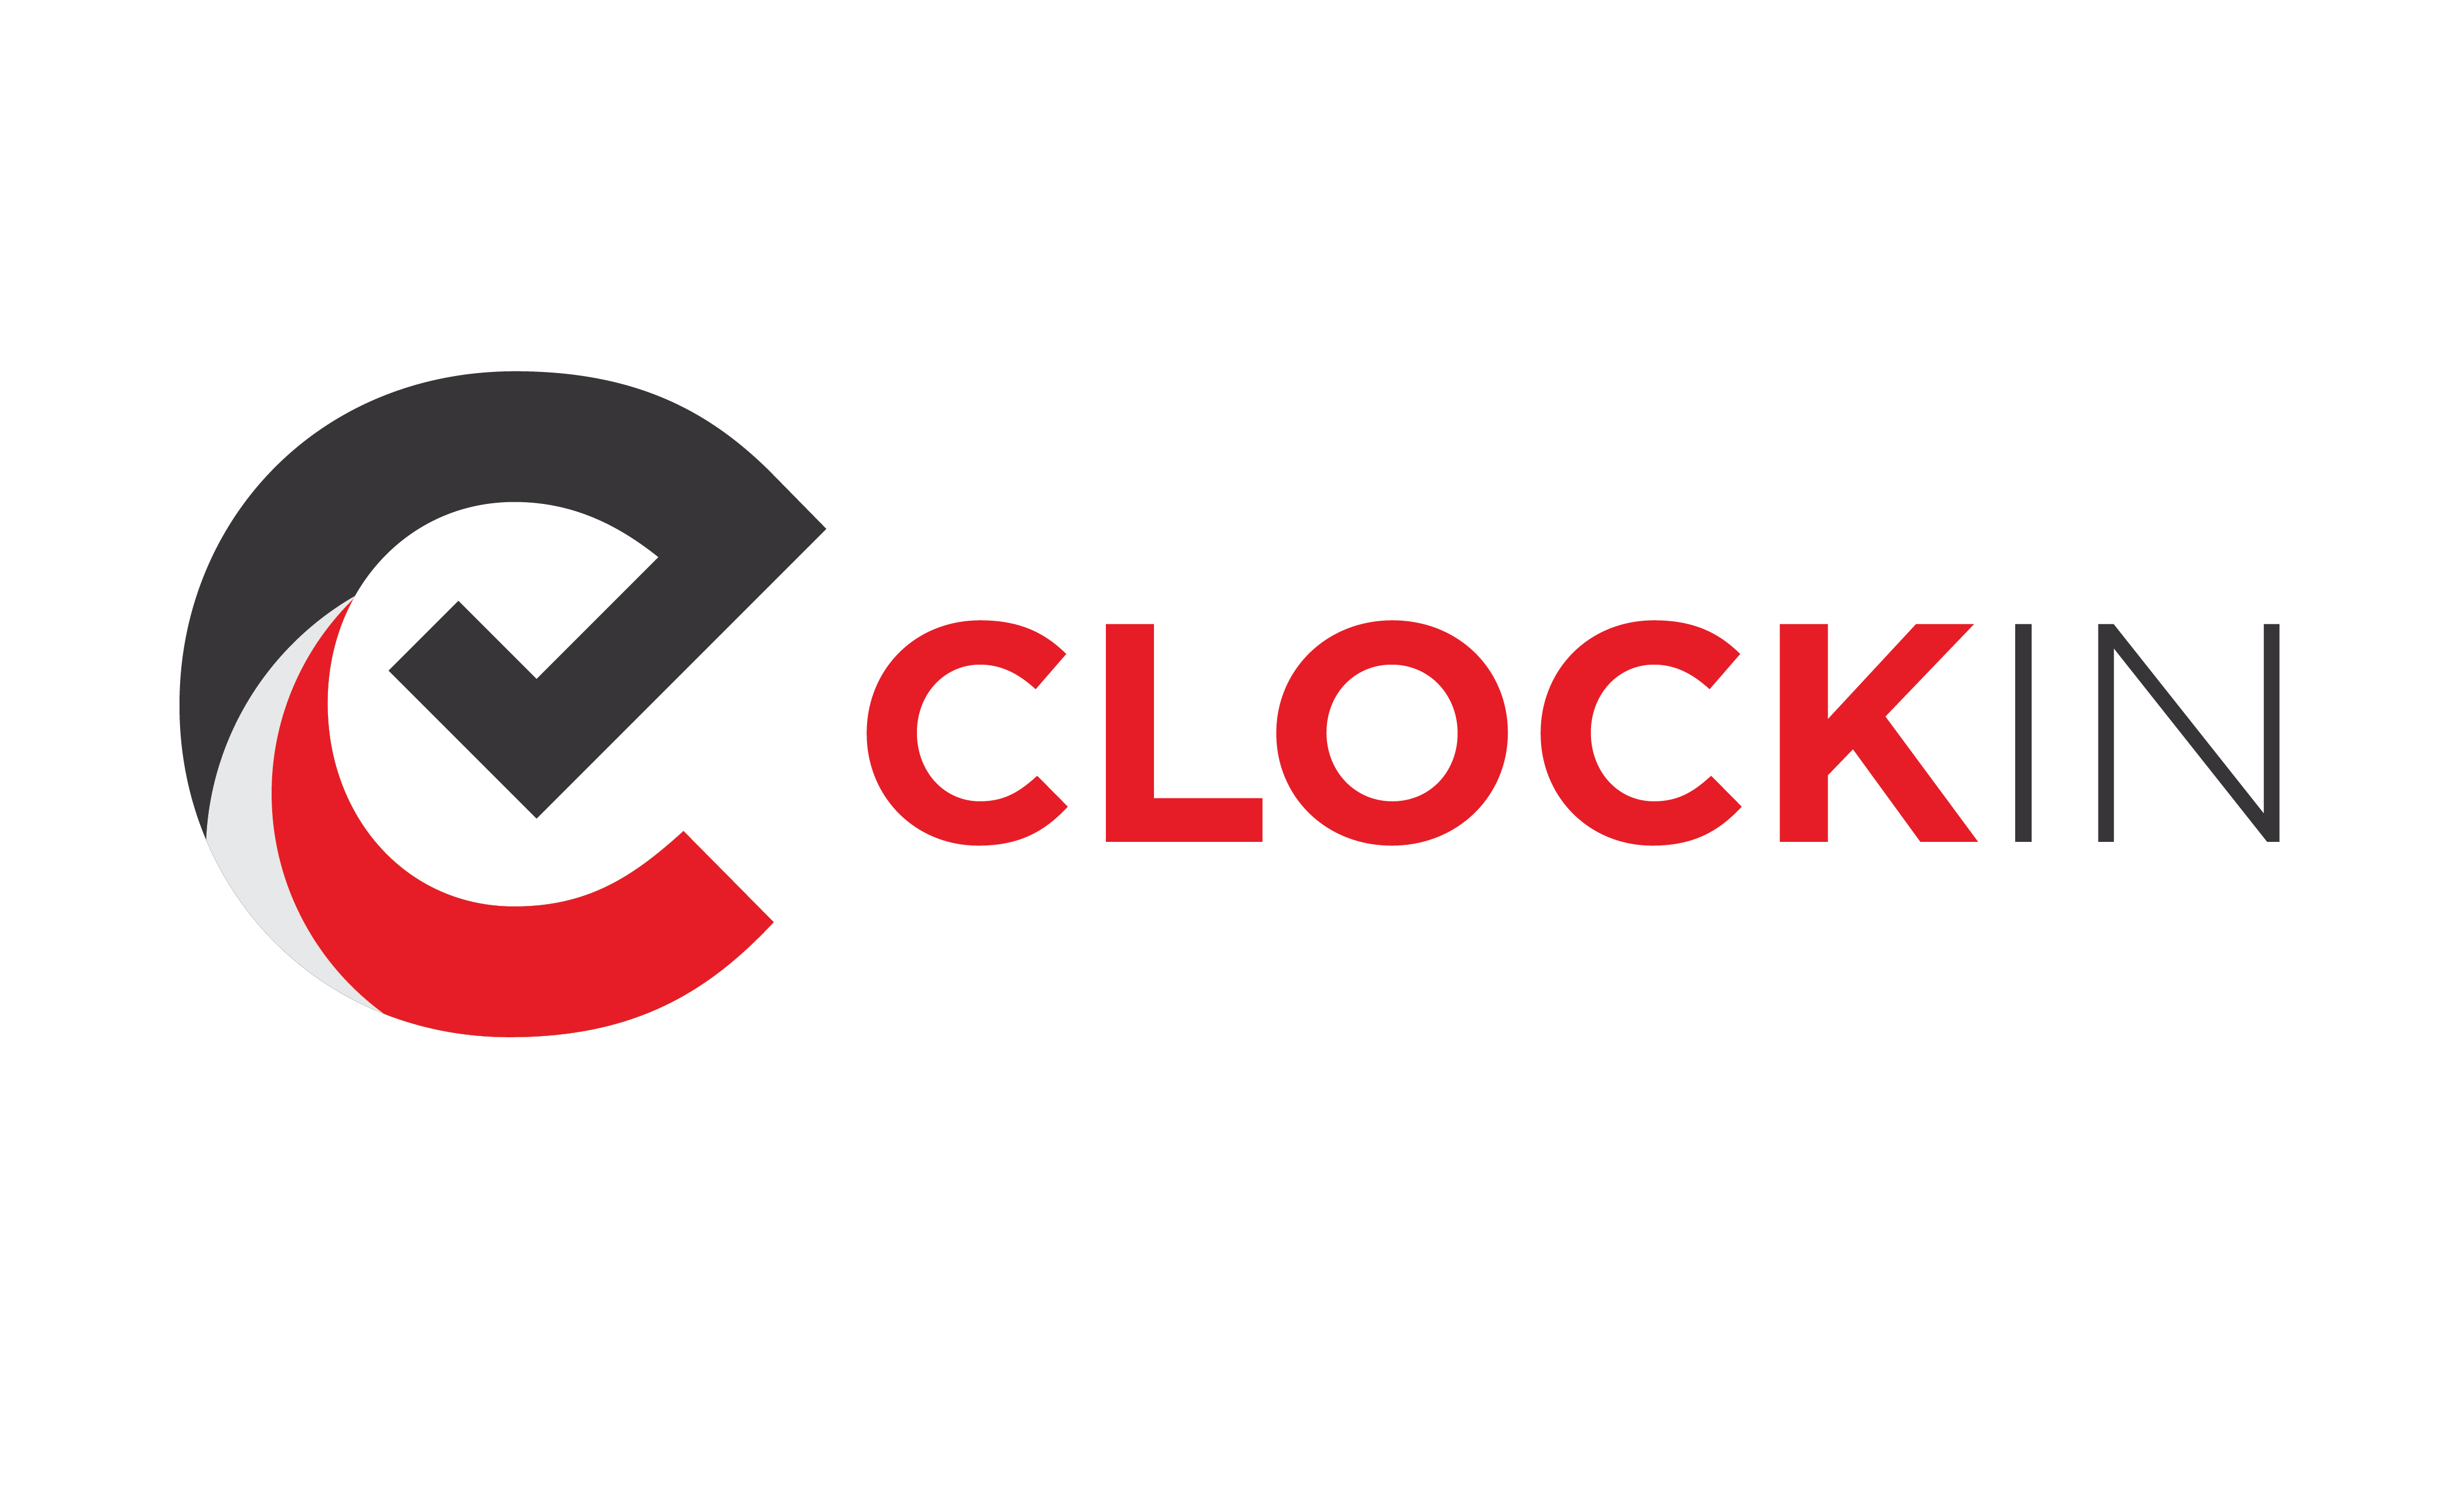 Clock-in | Login